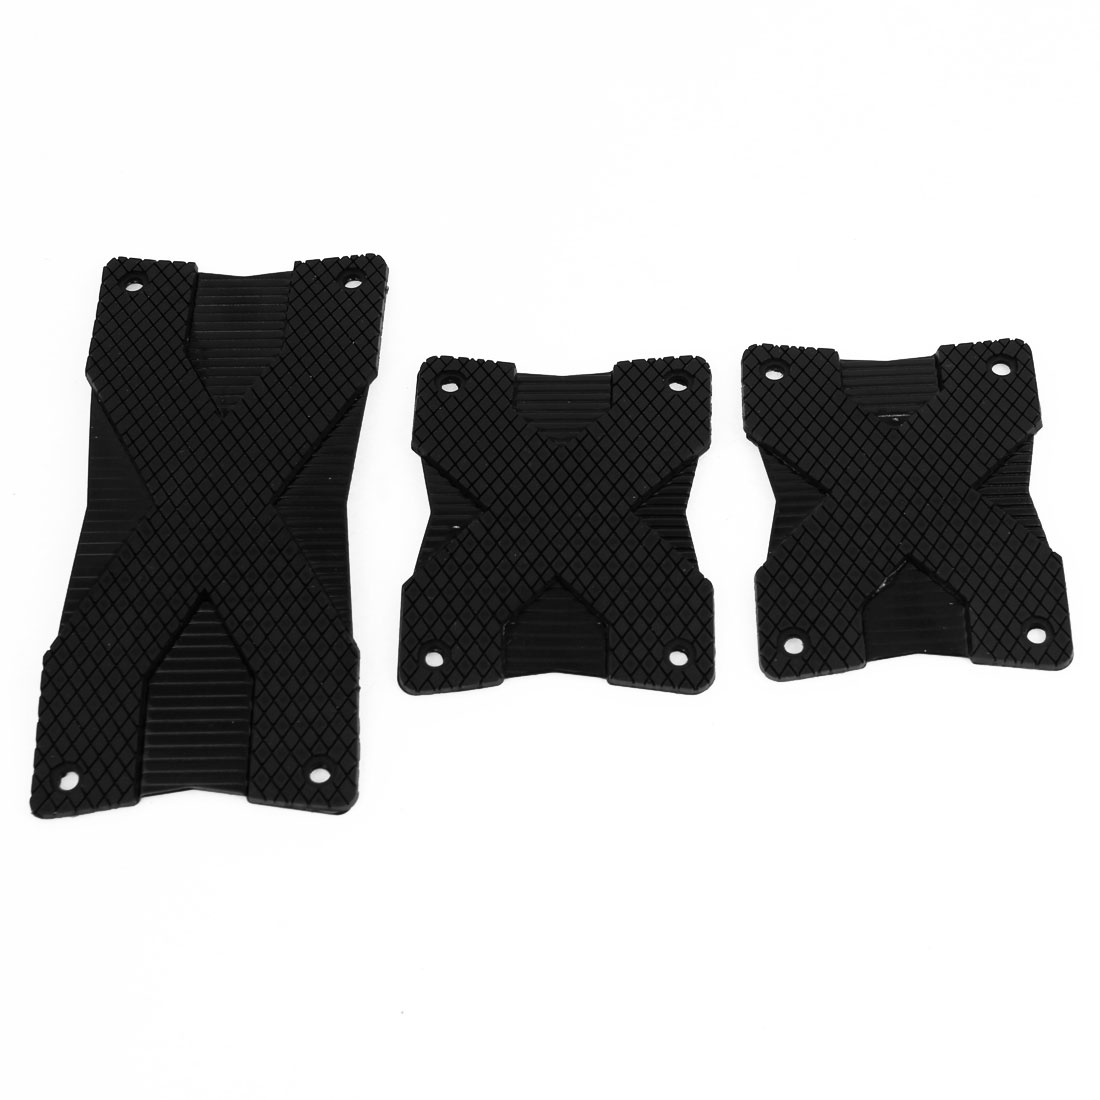 Car Black X Pattern Metal Foot Pedals Pad Covers Manual Transmission